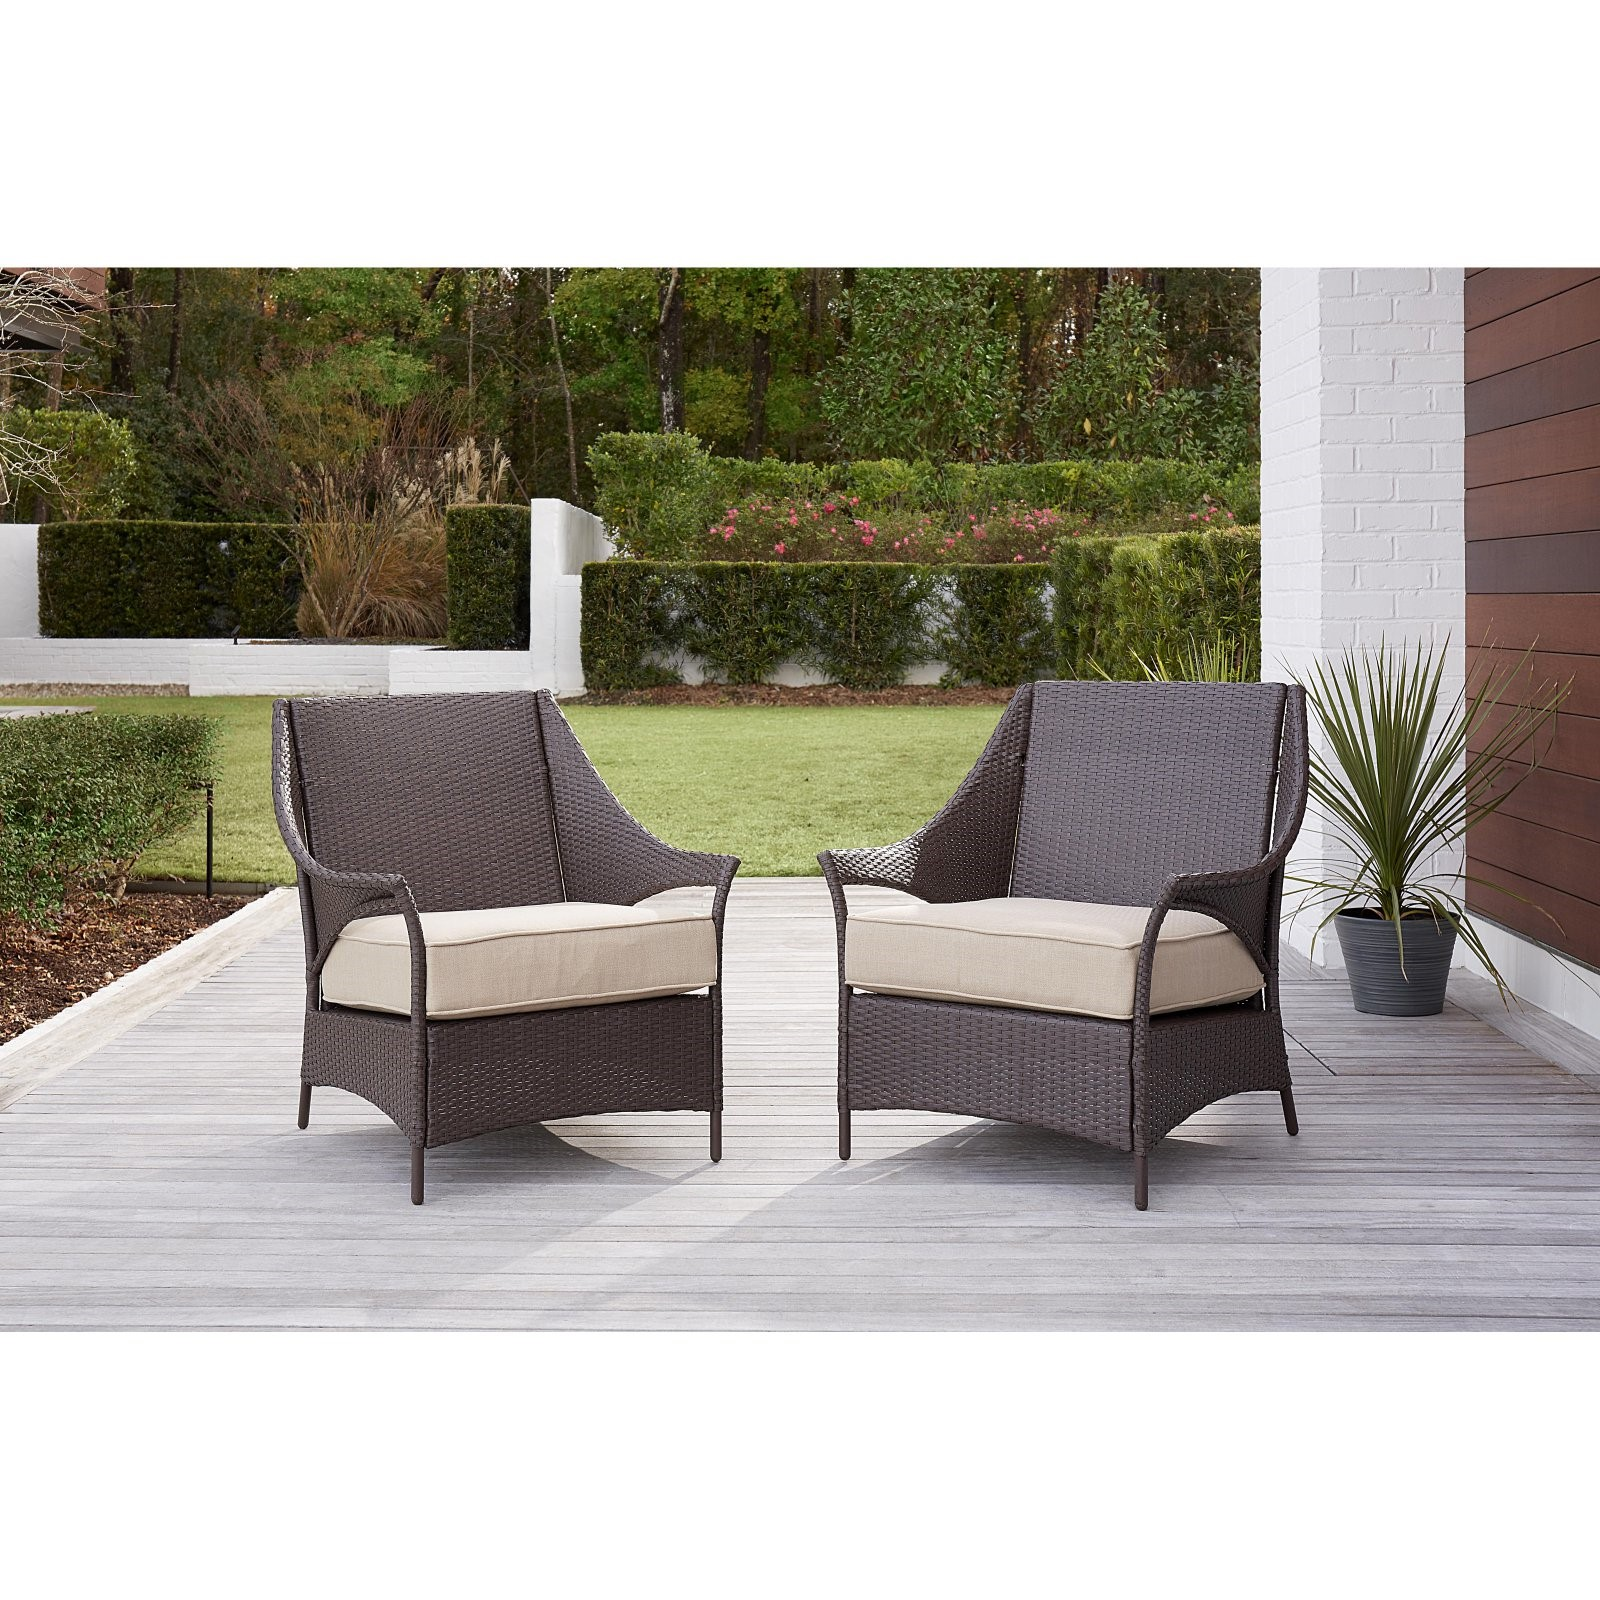 Cosco Lakewood Isle Outdoor Living Patio Lounge Chair - Set of 2